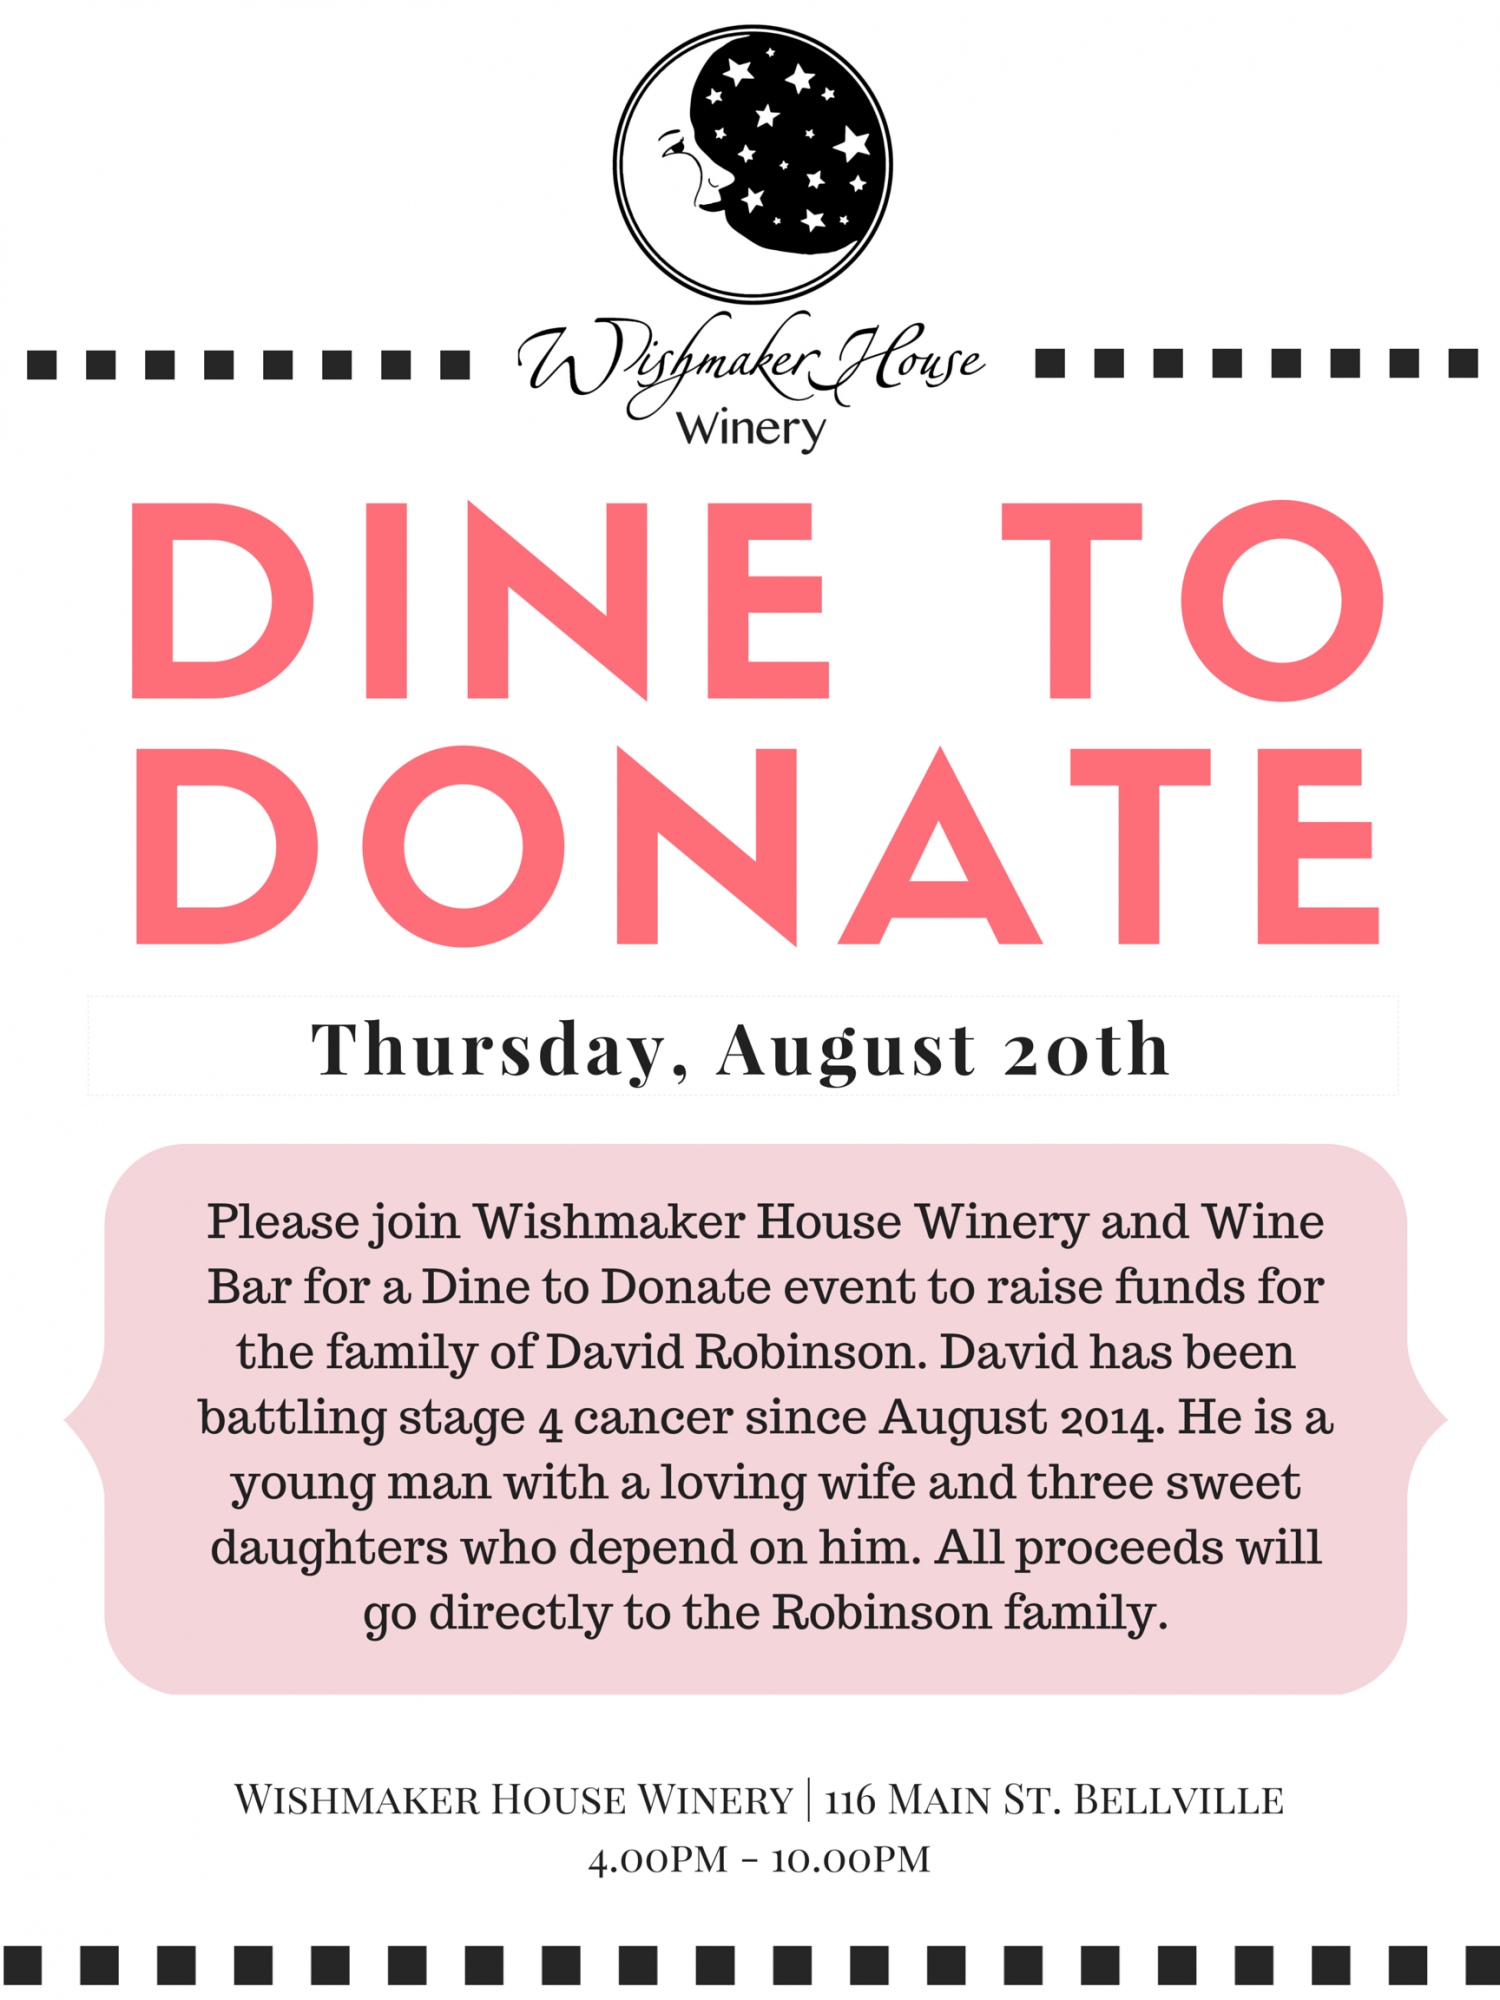 Dine to Donate for the Robinson Family